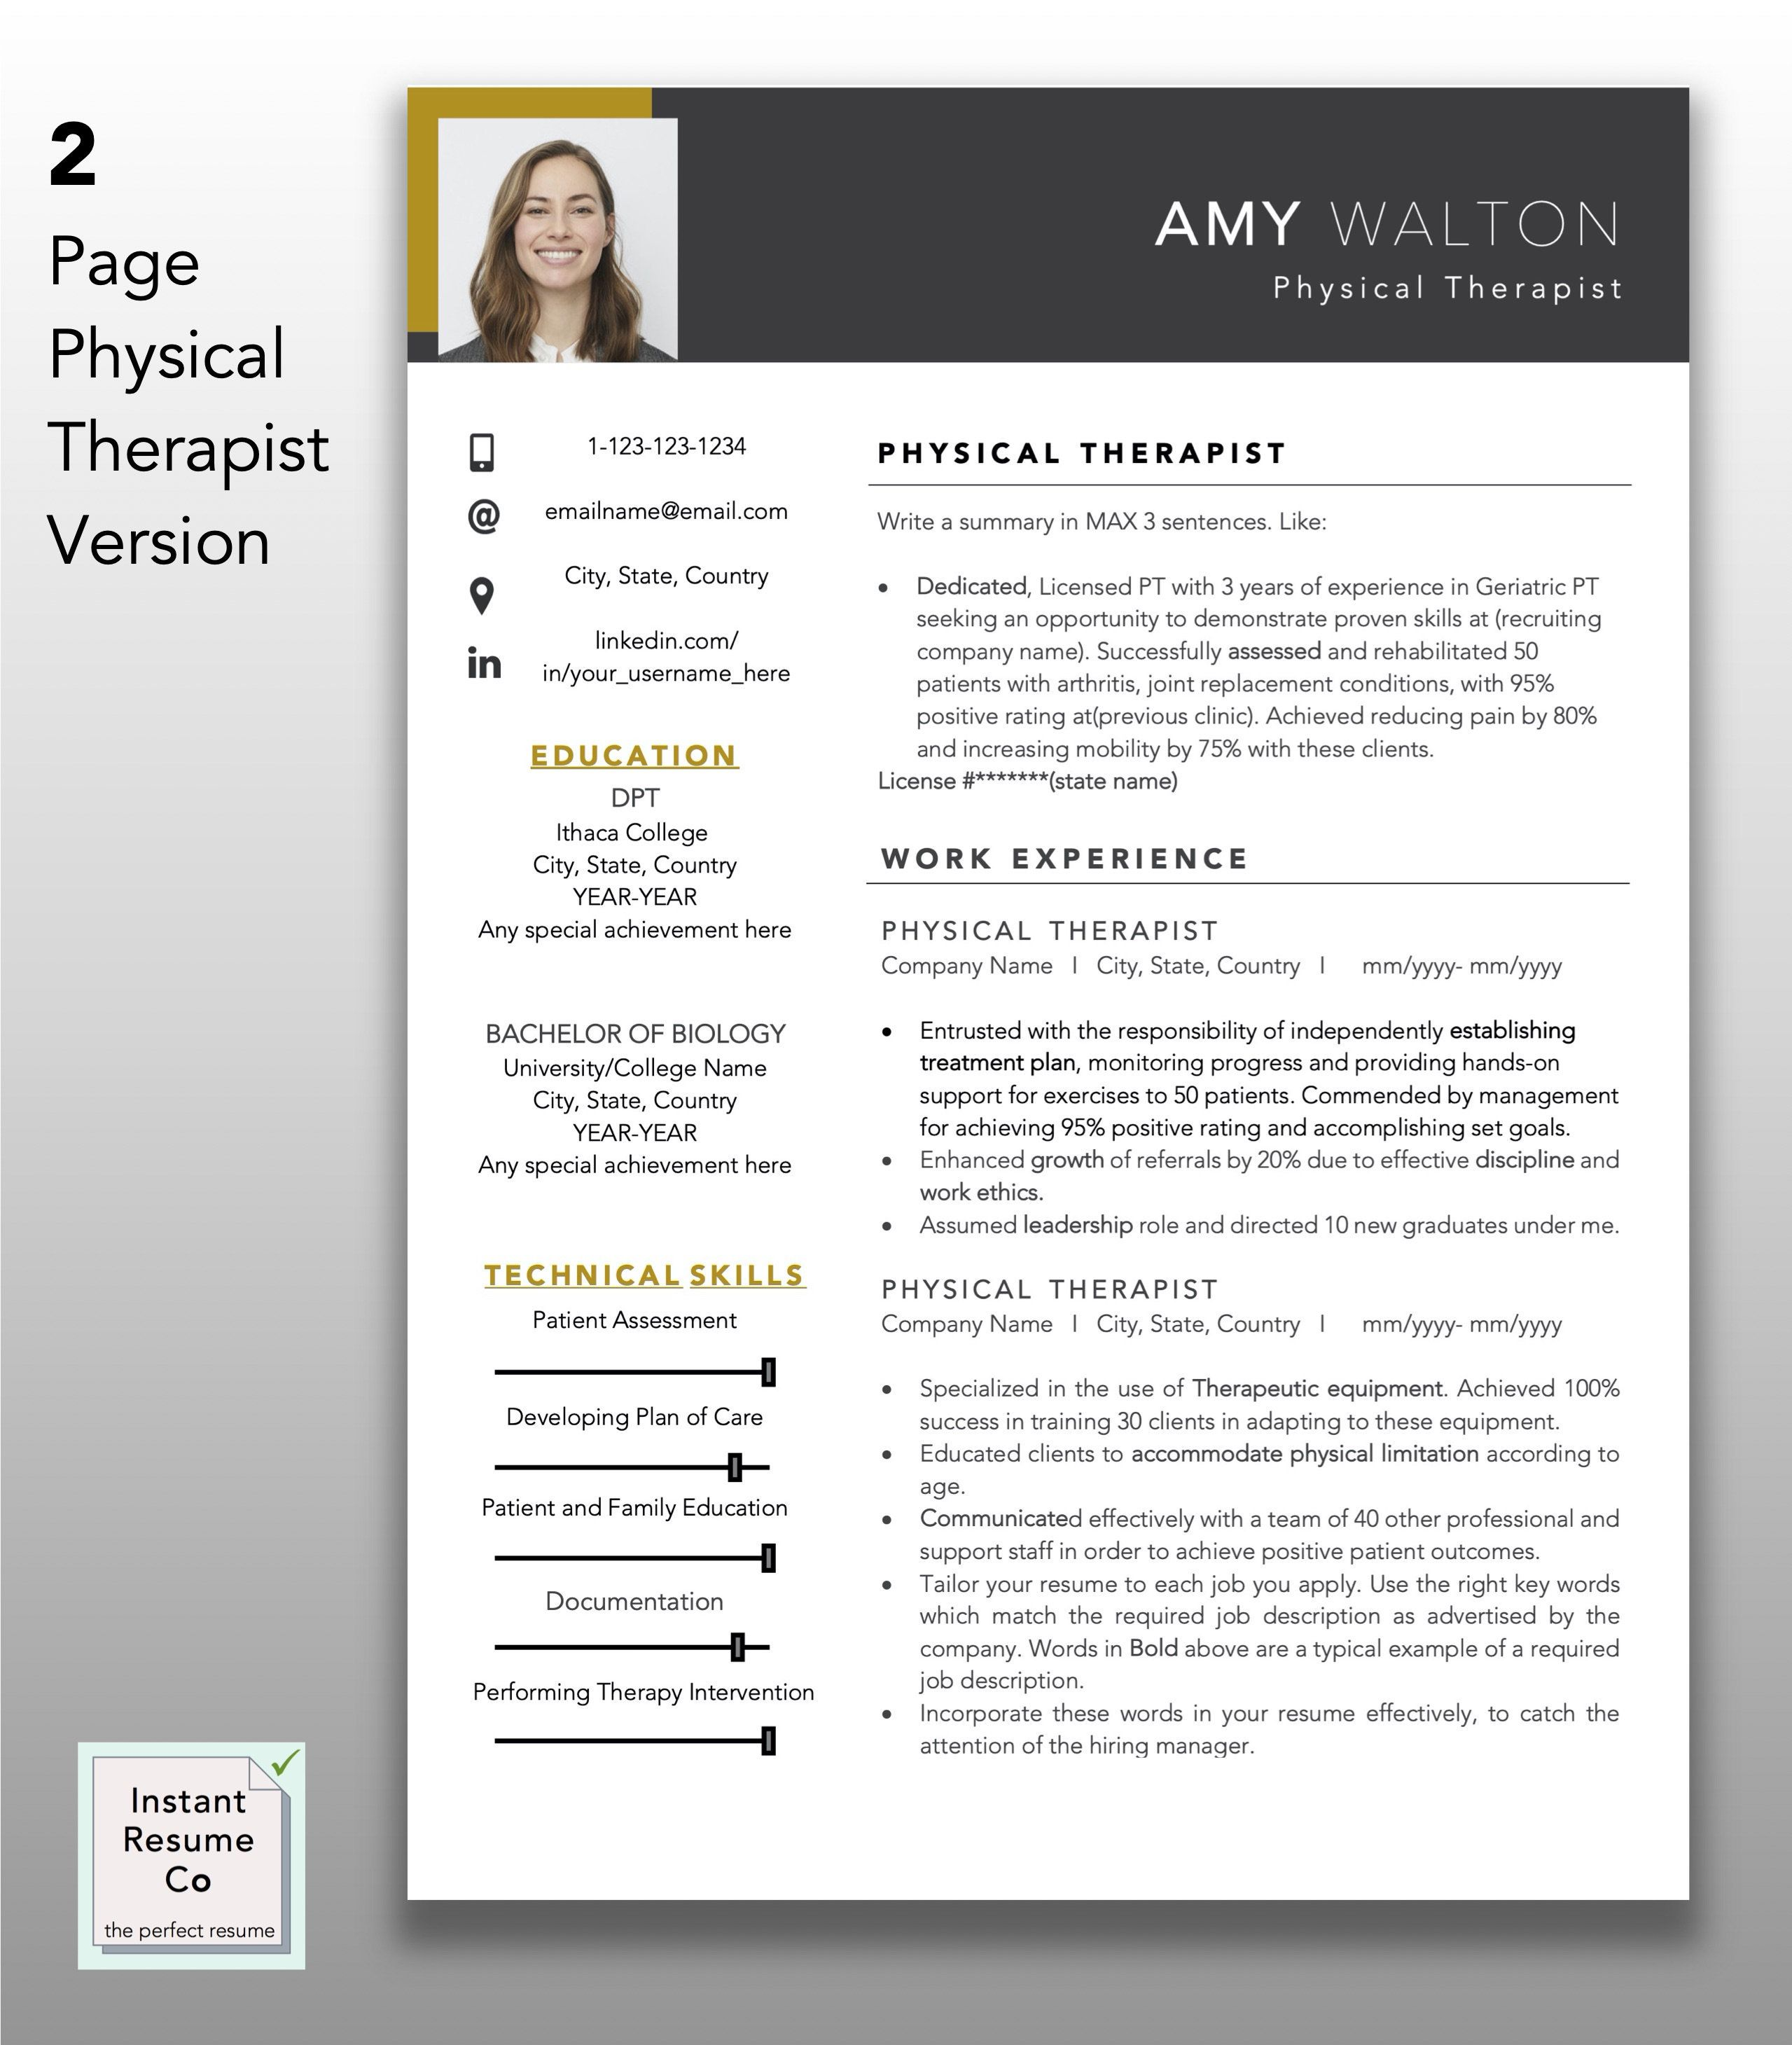 Physical Therapist Licensed Pt Professional Resume Template Etsy Resume Template Resume Templates Resume Examples